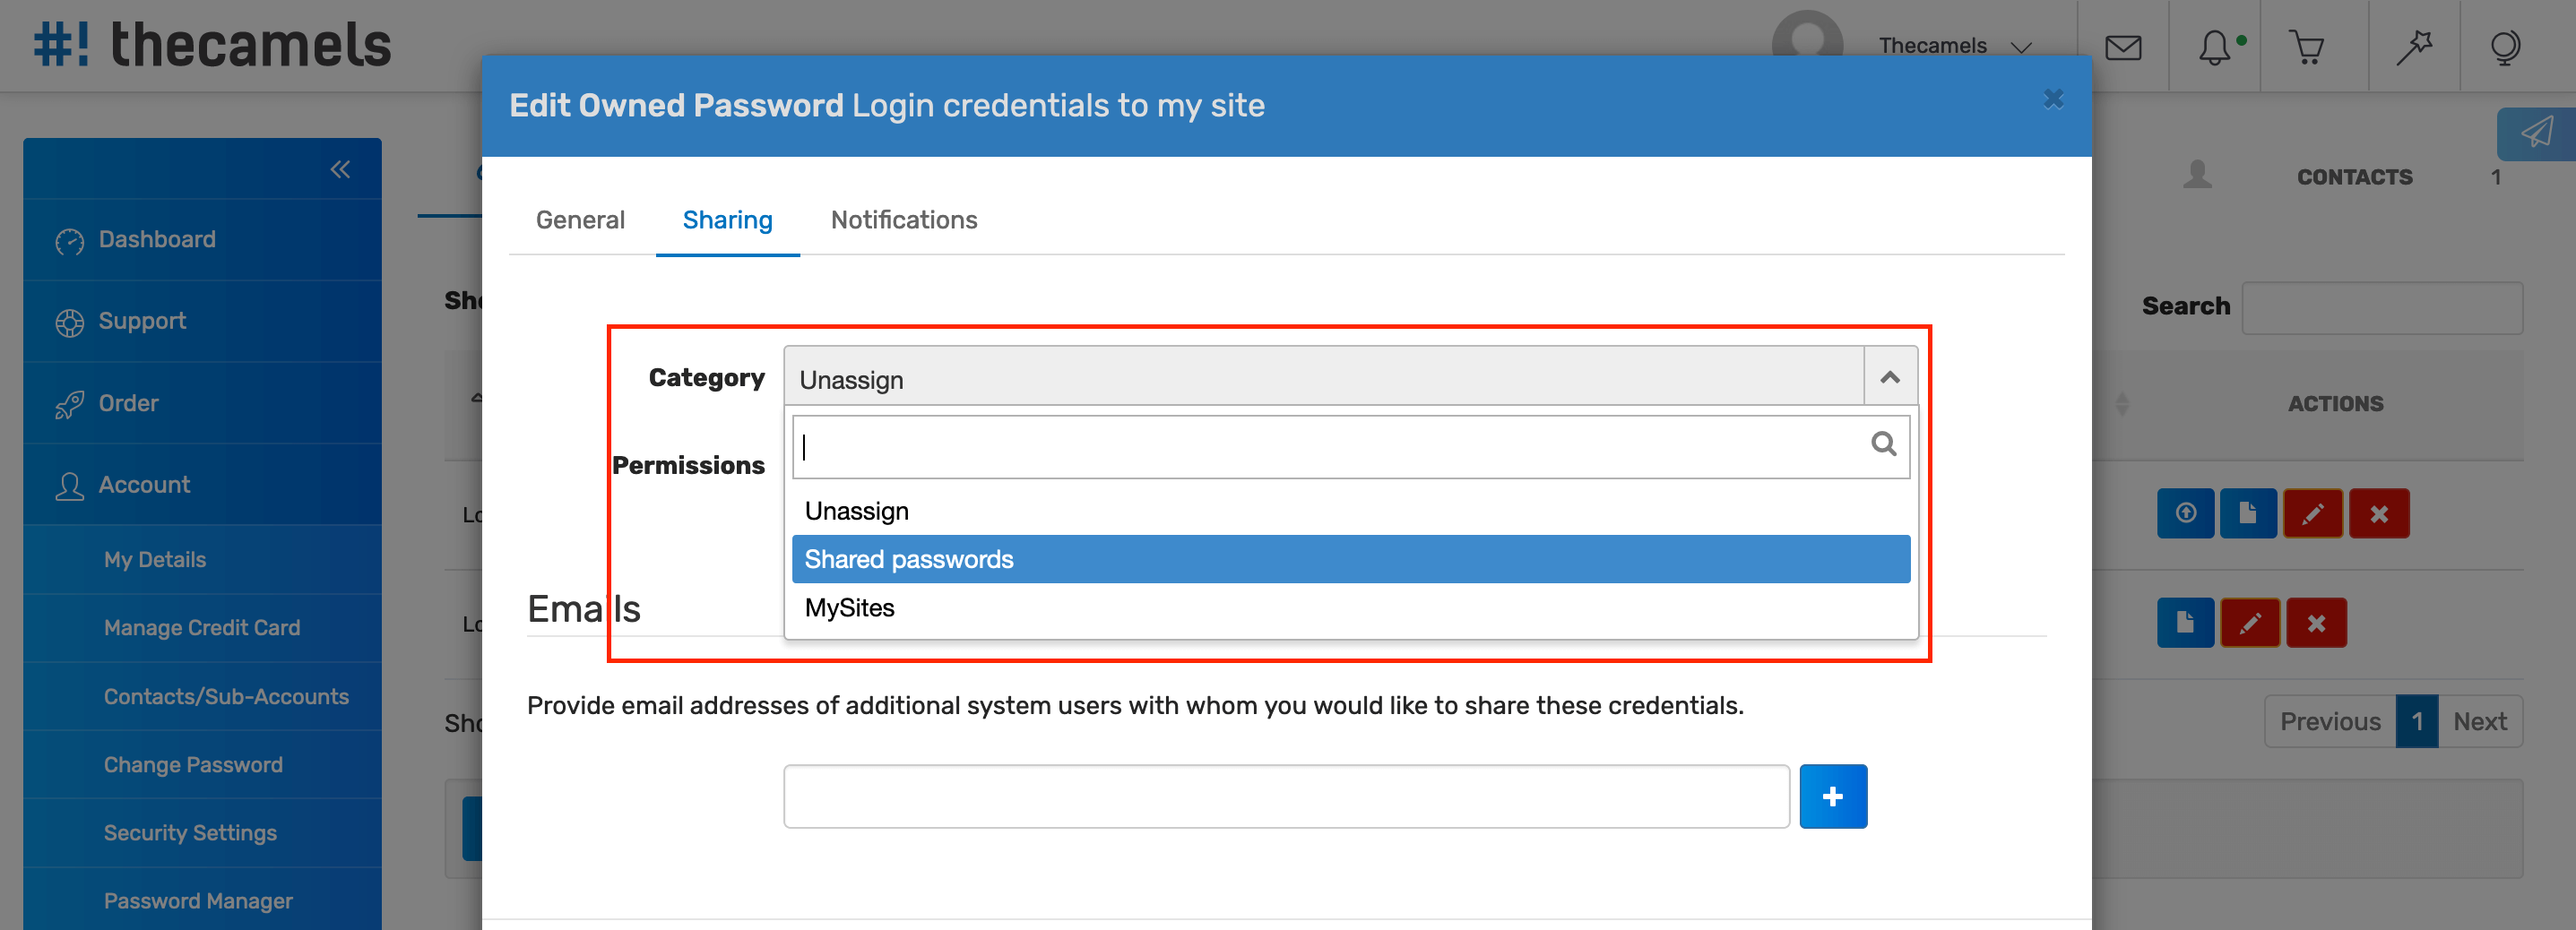 Password Manager - Sharing